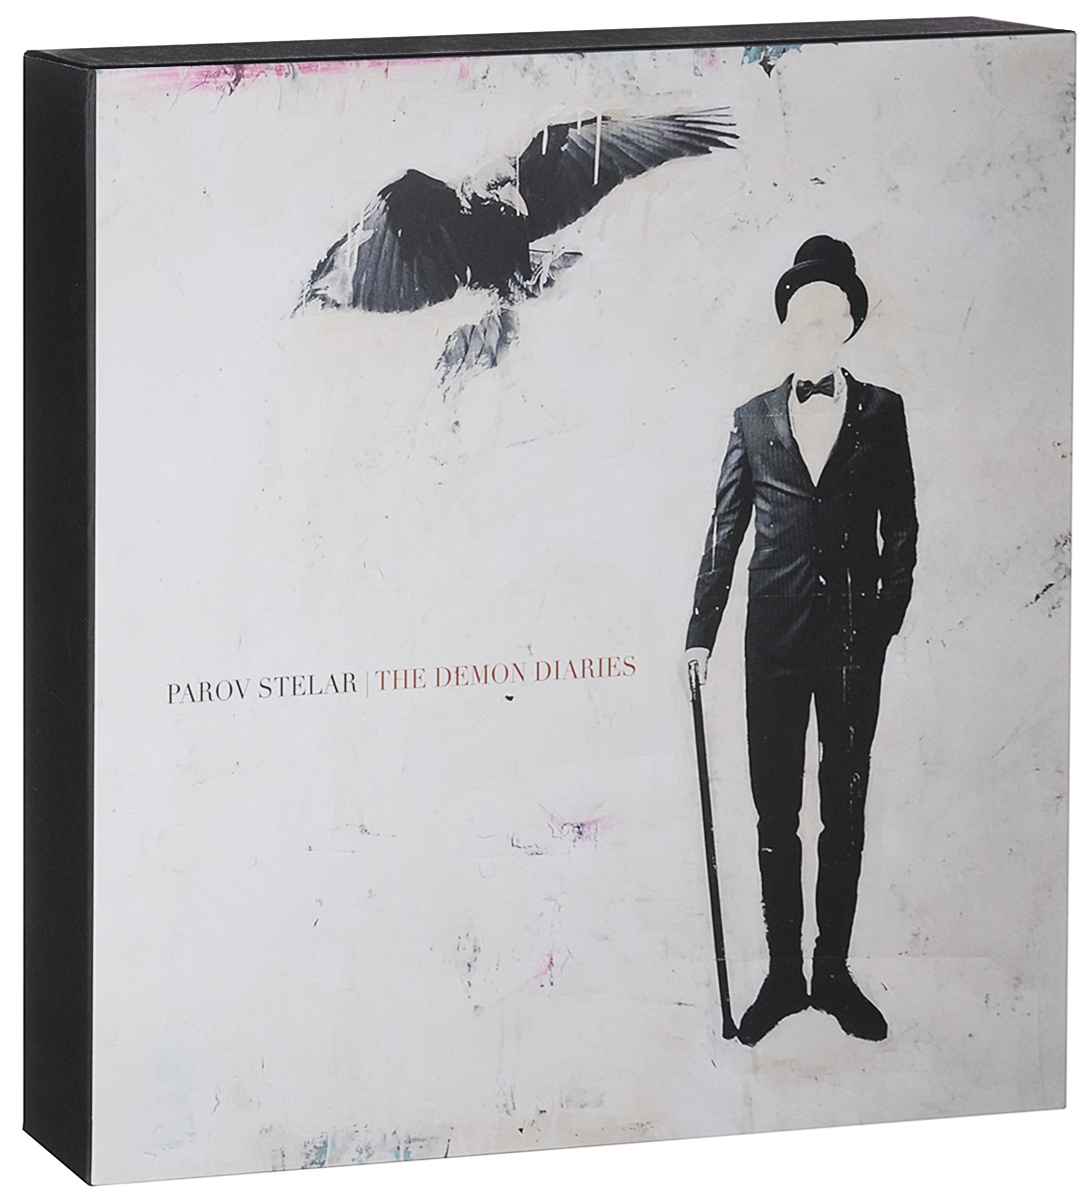 Parov Stelar Parov Stelar. The Demon Diaries. Super Deluxe Limited Edition (2 CD + 3 LP) zenfone 2 deluxe special edition